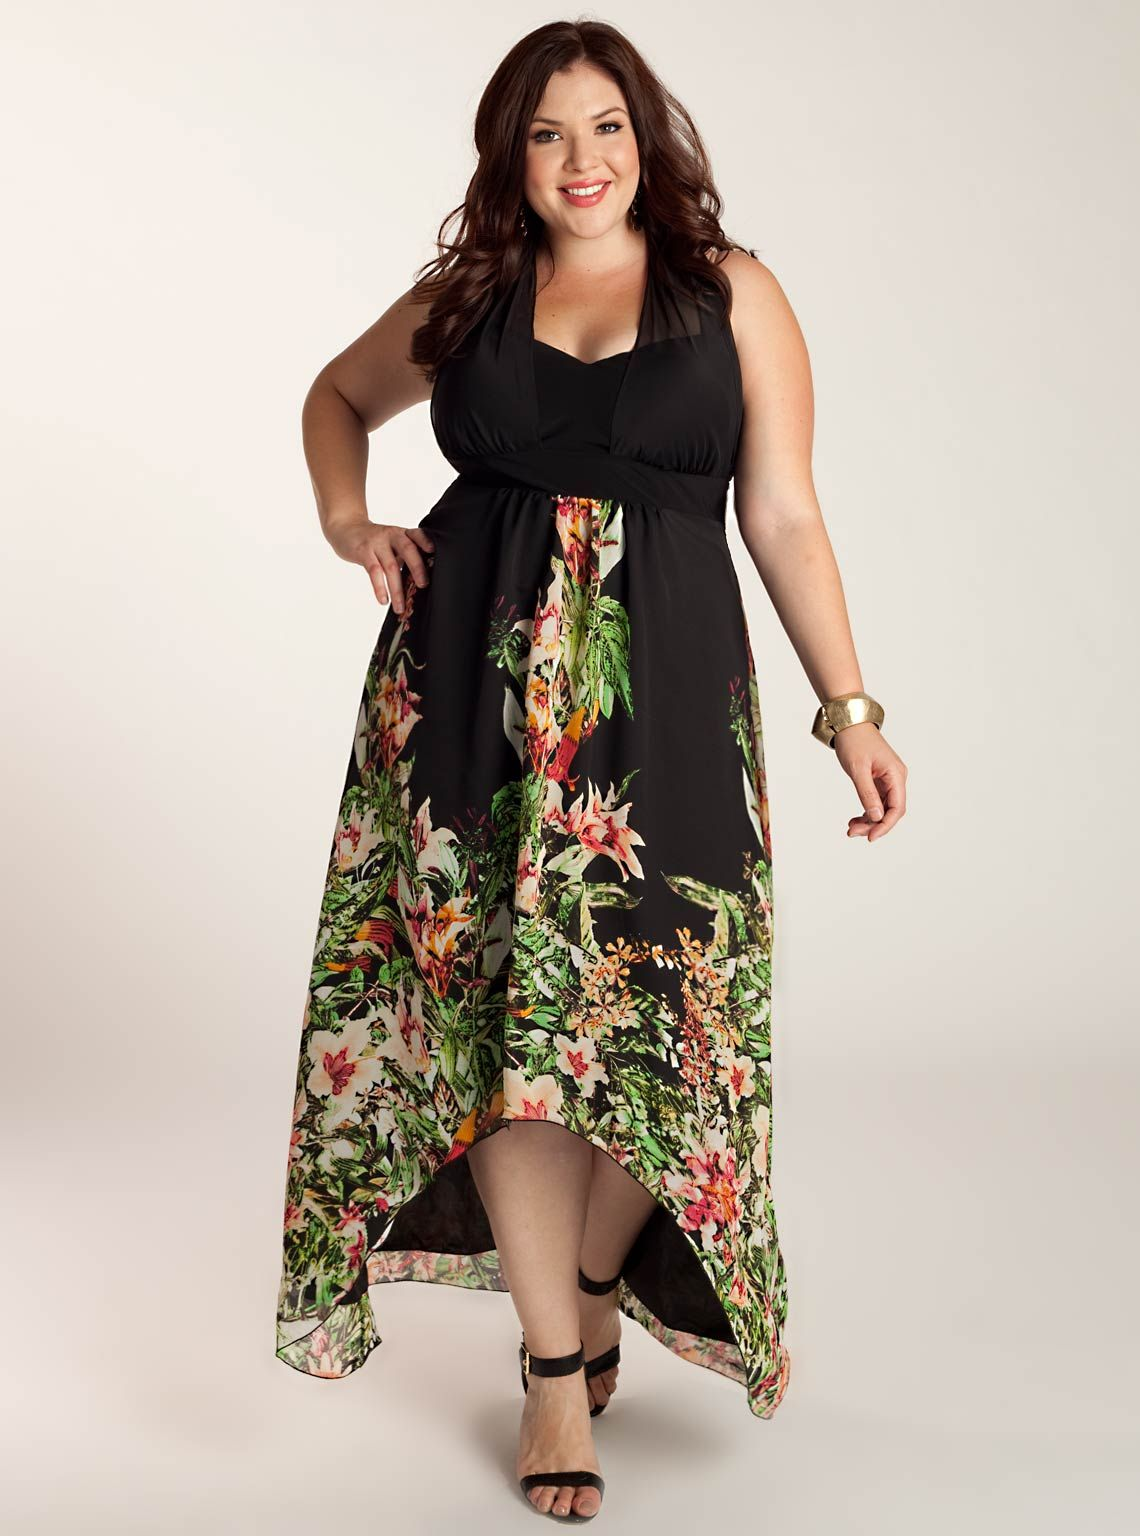 25 Plus Size Womens Clothing For Summer | High fashion dresses ...